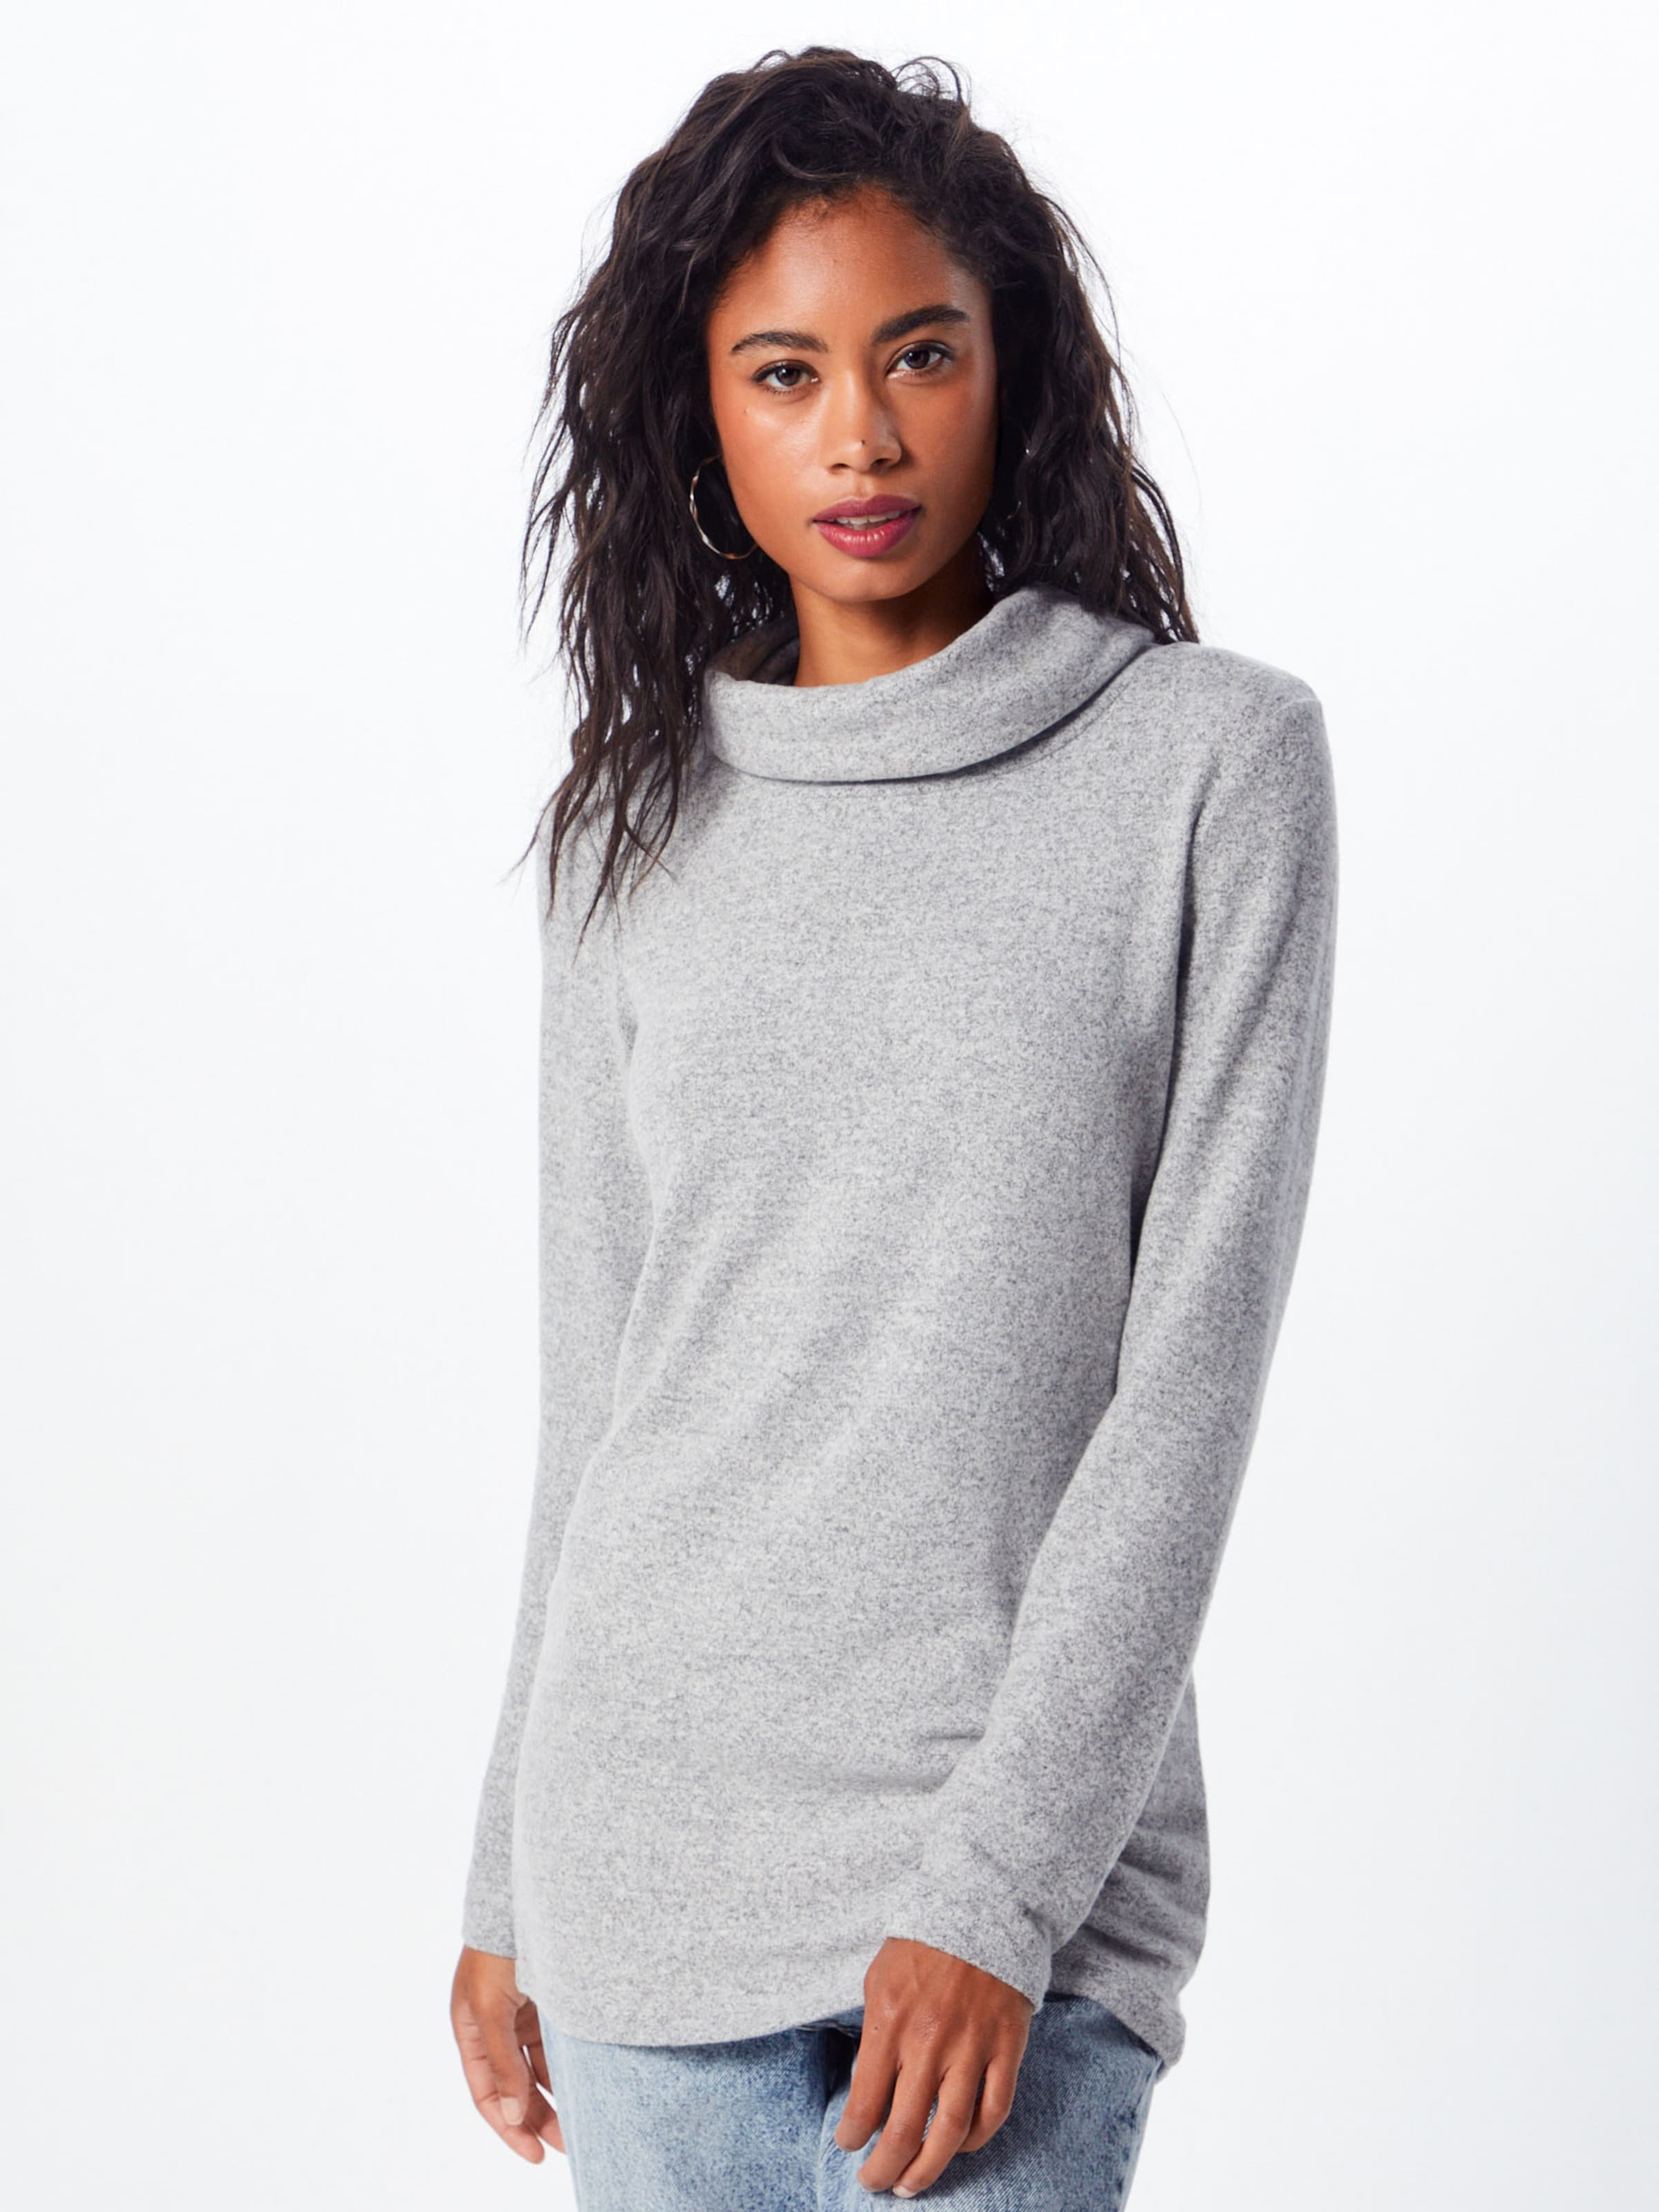 over About En Pull 'geeske Jumper' You Chiné Gris trCdBshQx